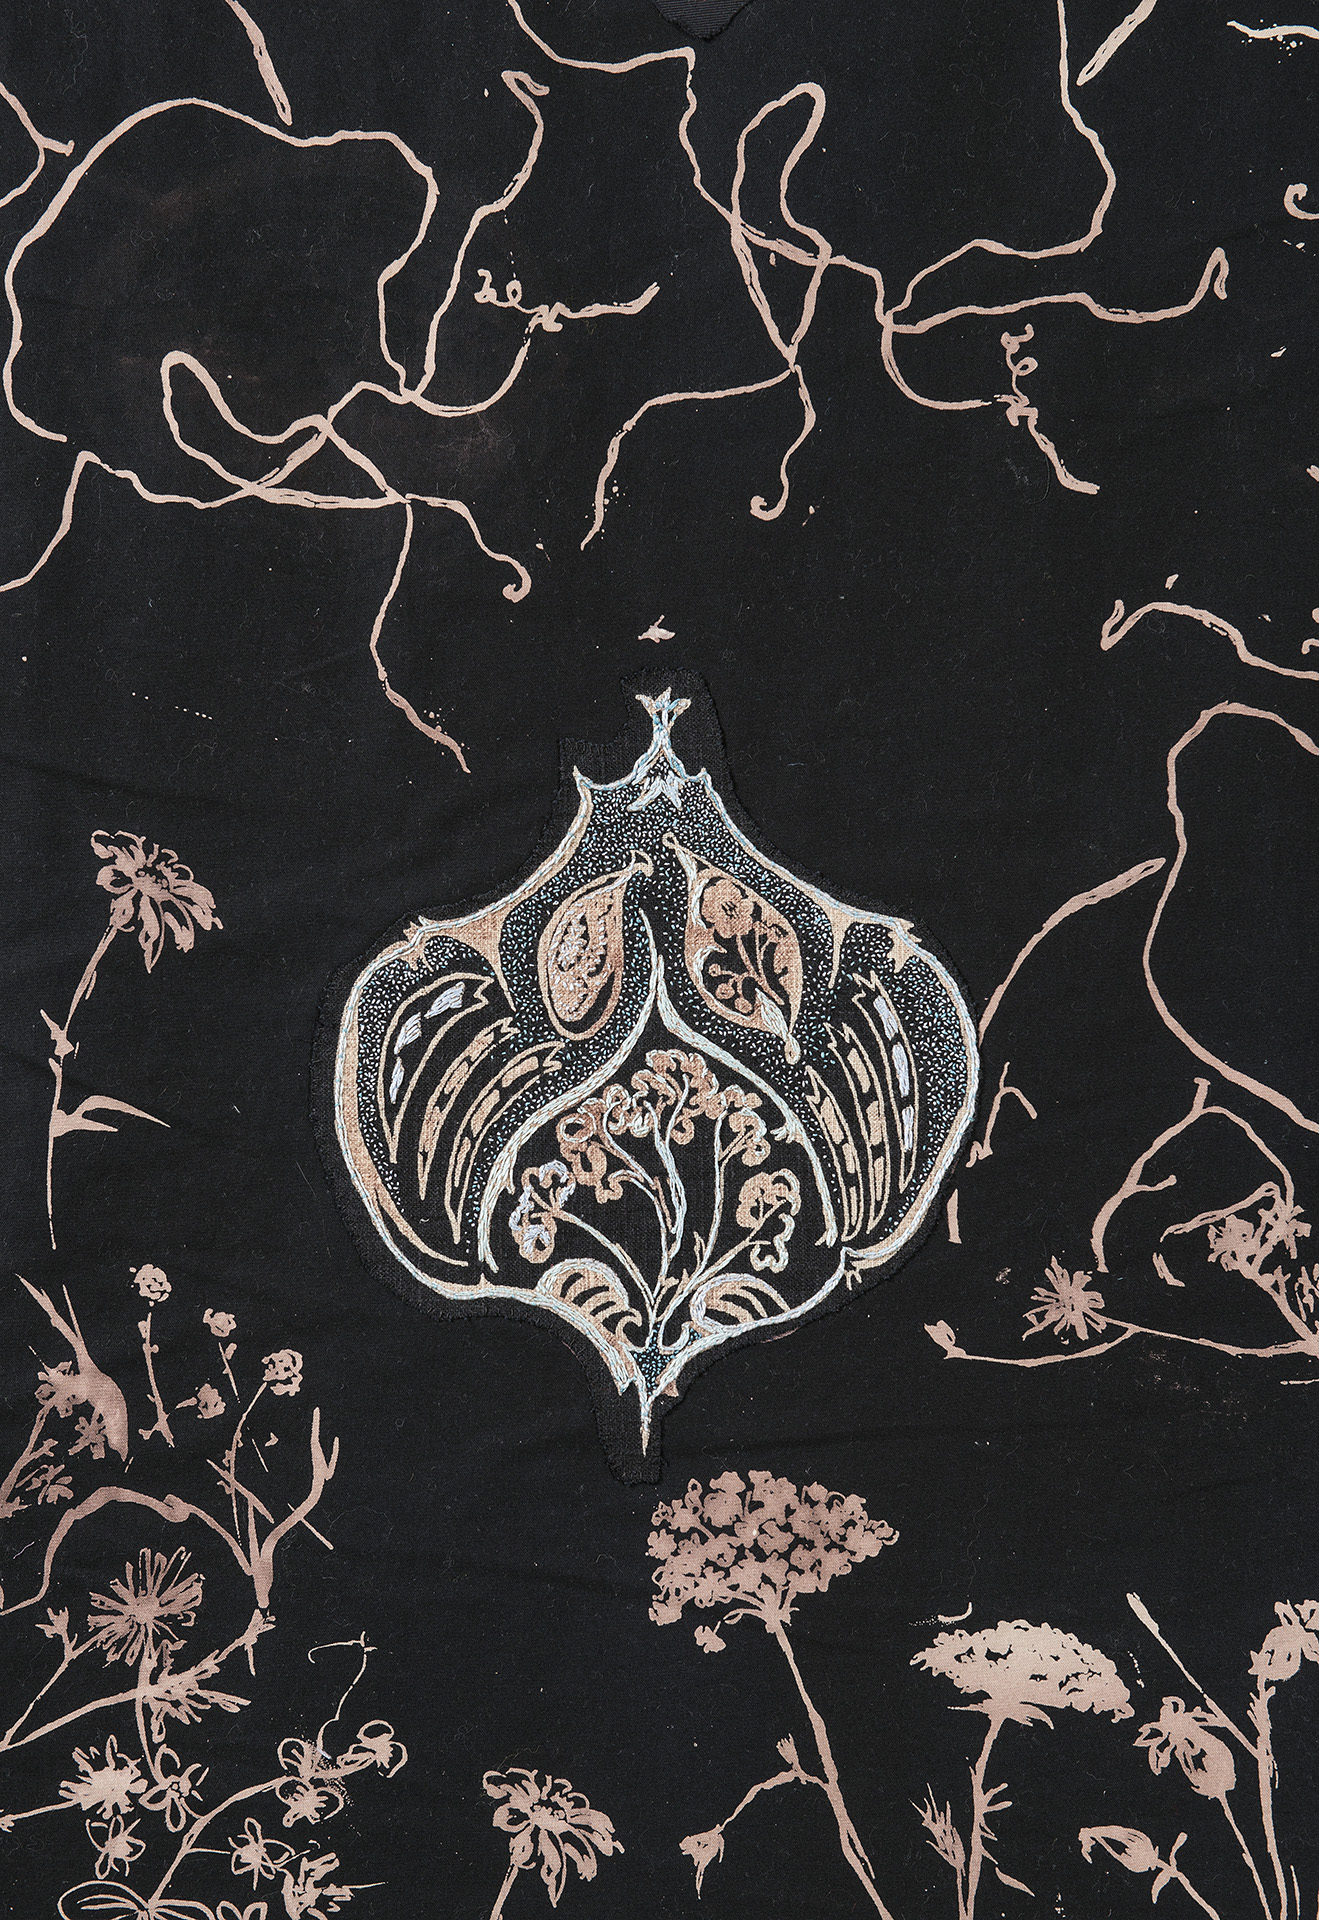 Incantation, detail showing embroidery